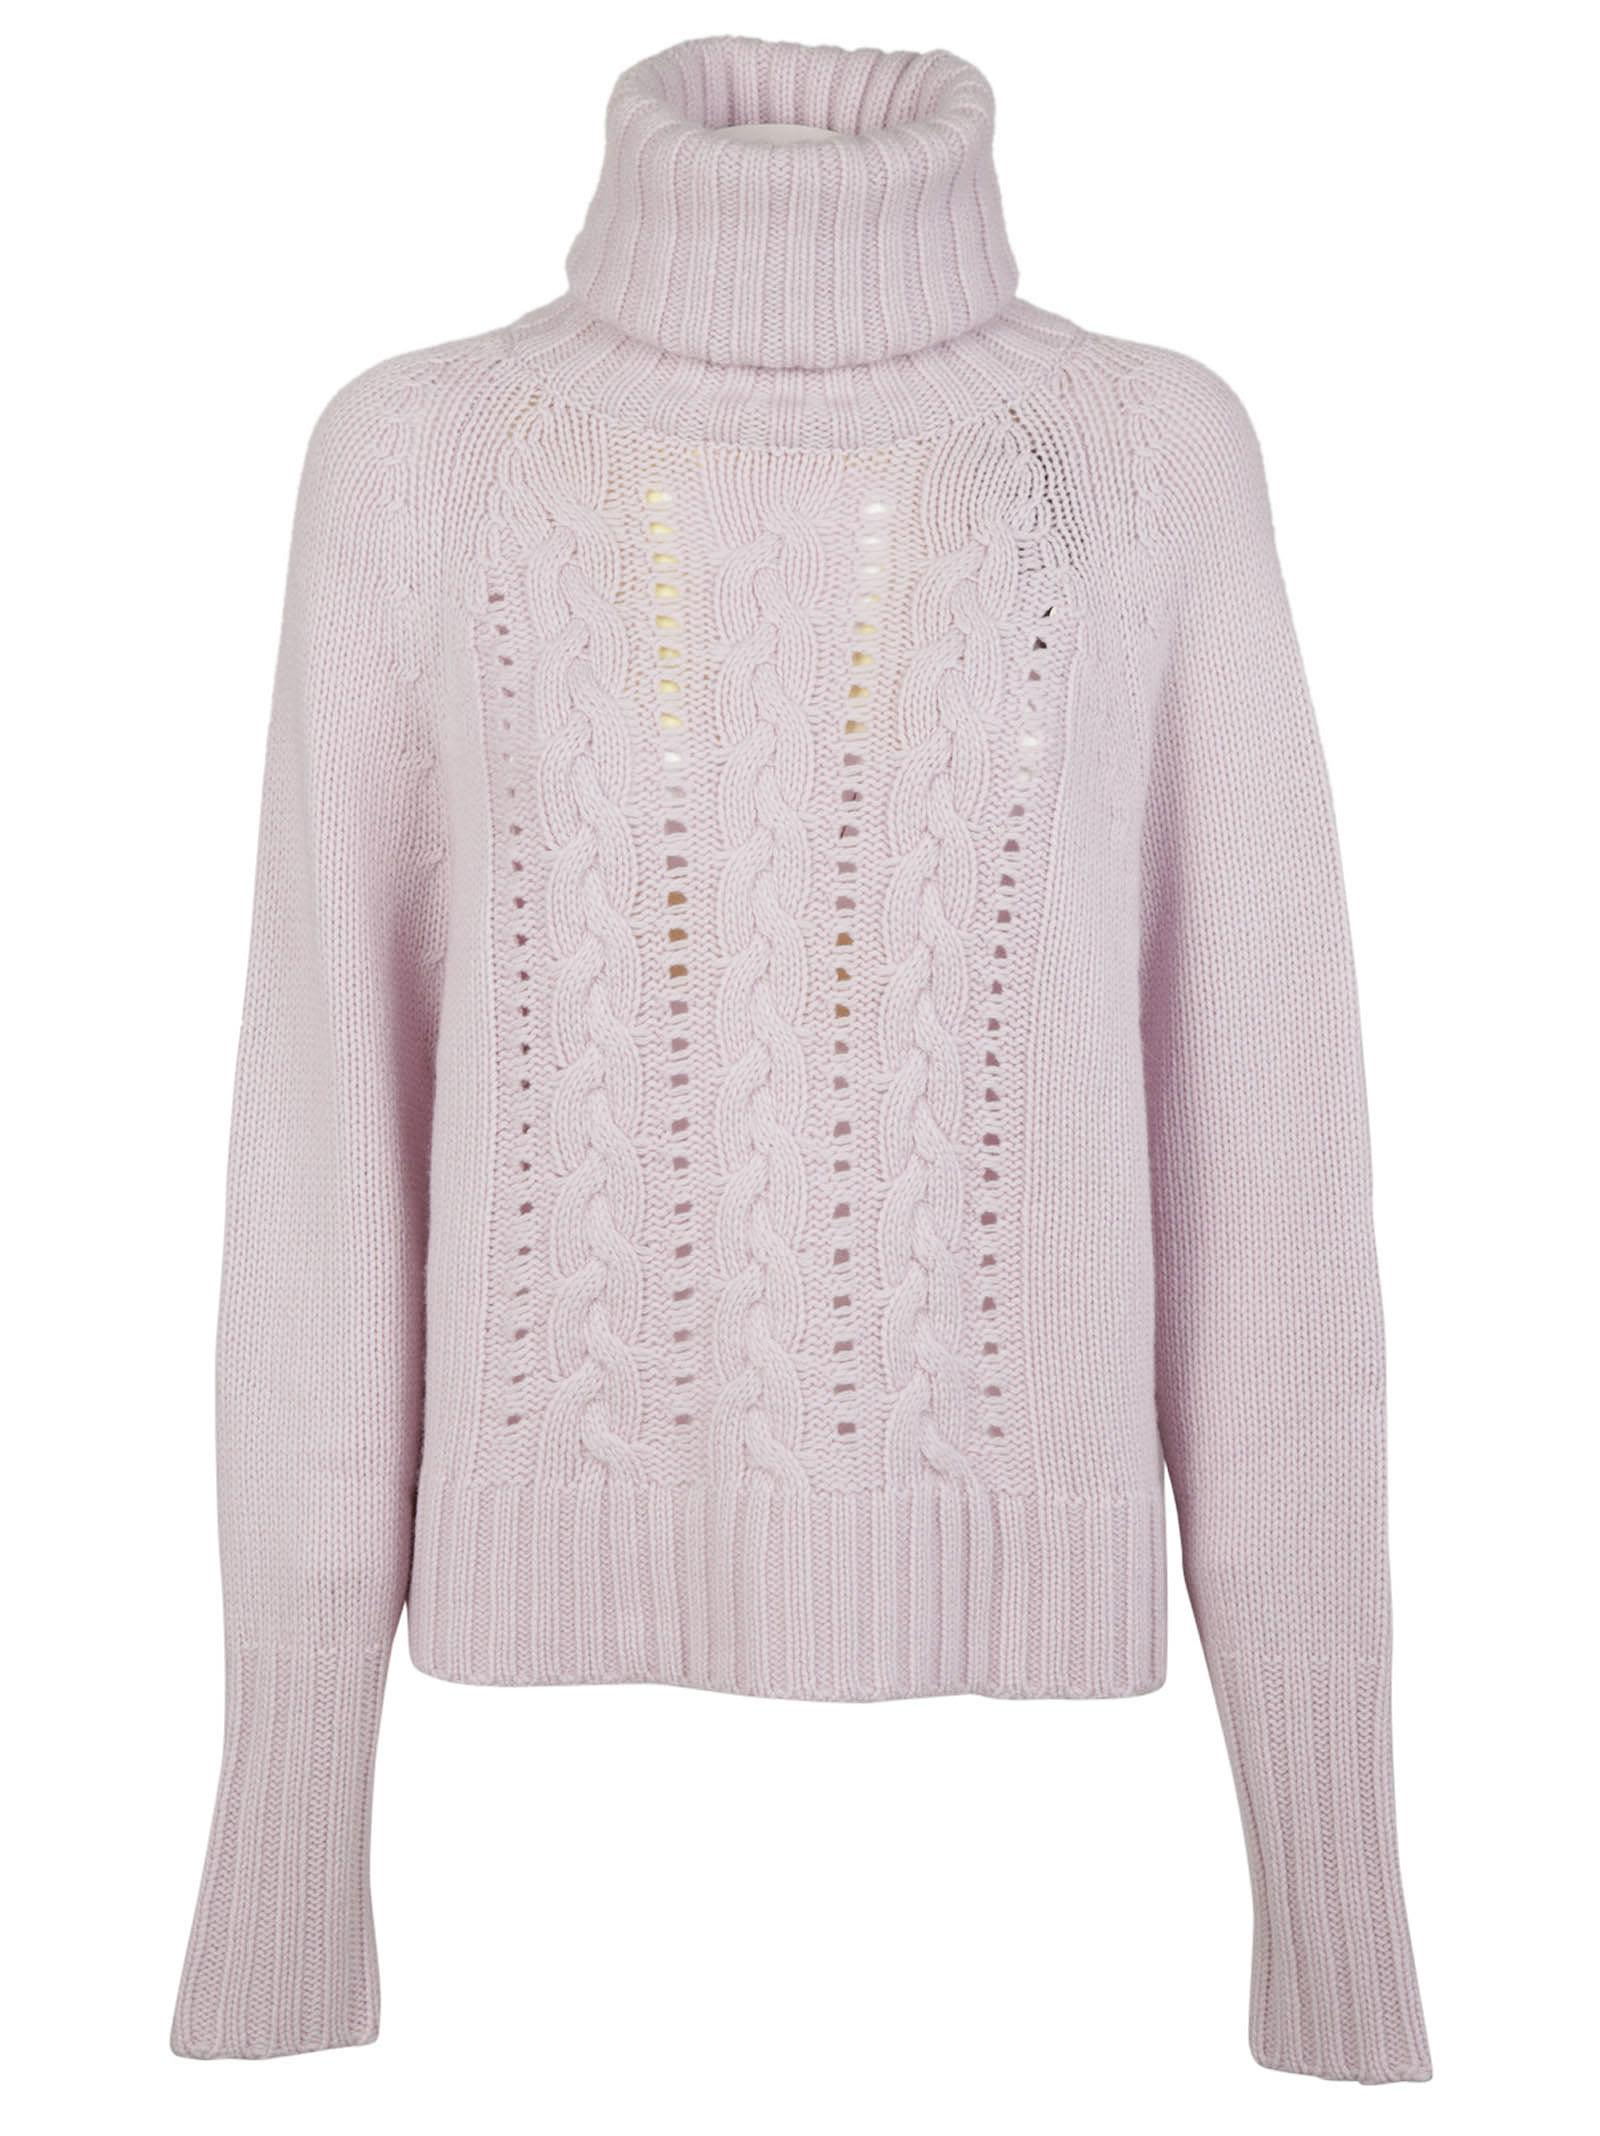 Ermanno Scervino Turtleneck Knitted Sweater